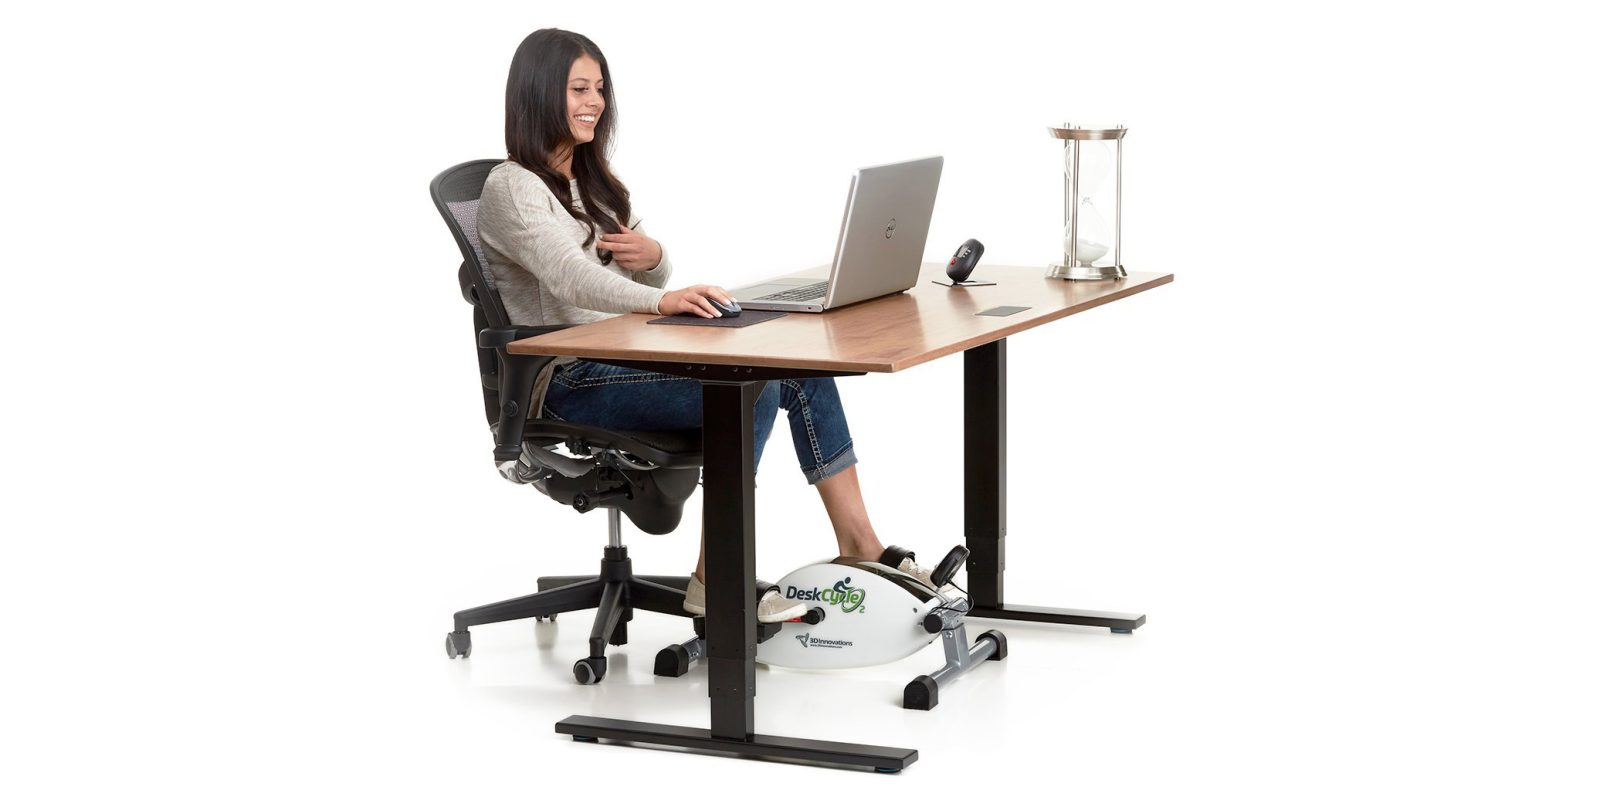 Add The Deskcycle 2 Under Desk Exercise Bike To Your Workstation For 119 Reg 150